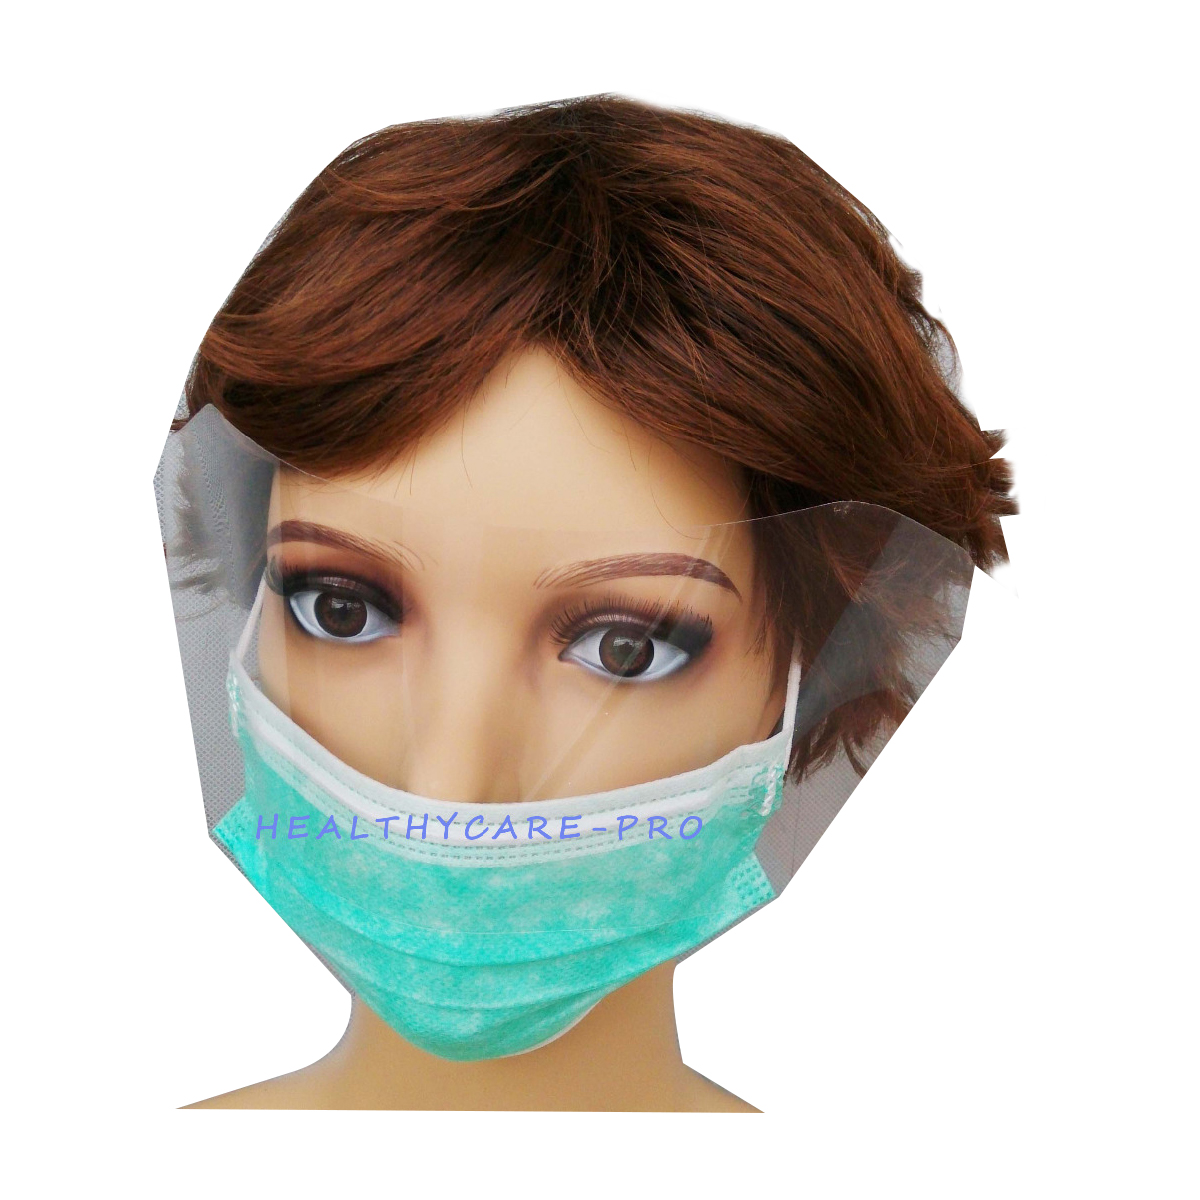 100Pcs/Pack New Anti-fog Face Mask With Visor For Surgical Use Polypropylene Mask With 3pcs Layer Health Care Tool 100Pcs/Pack New Anti-fog Face Mask With Visor For Surgical Use Polypropylene Mask With 3pcs Layer Health Care Tool